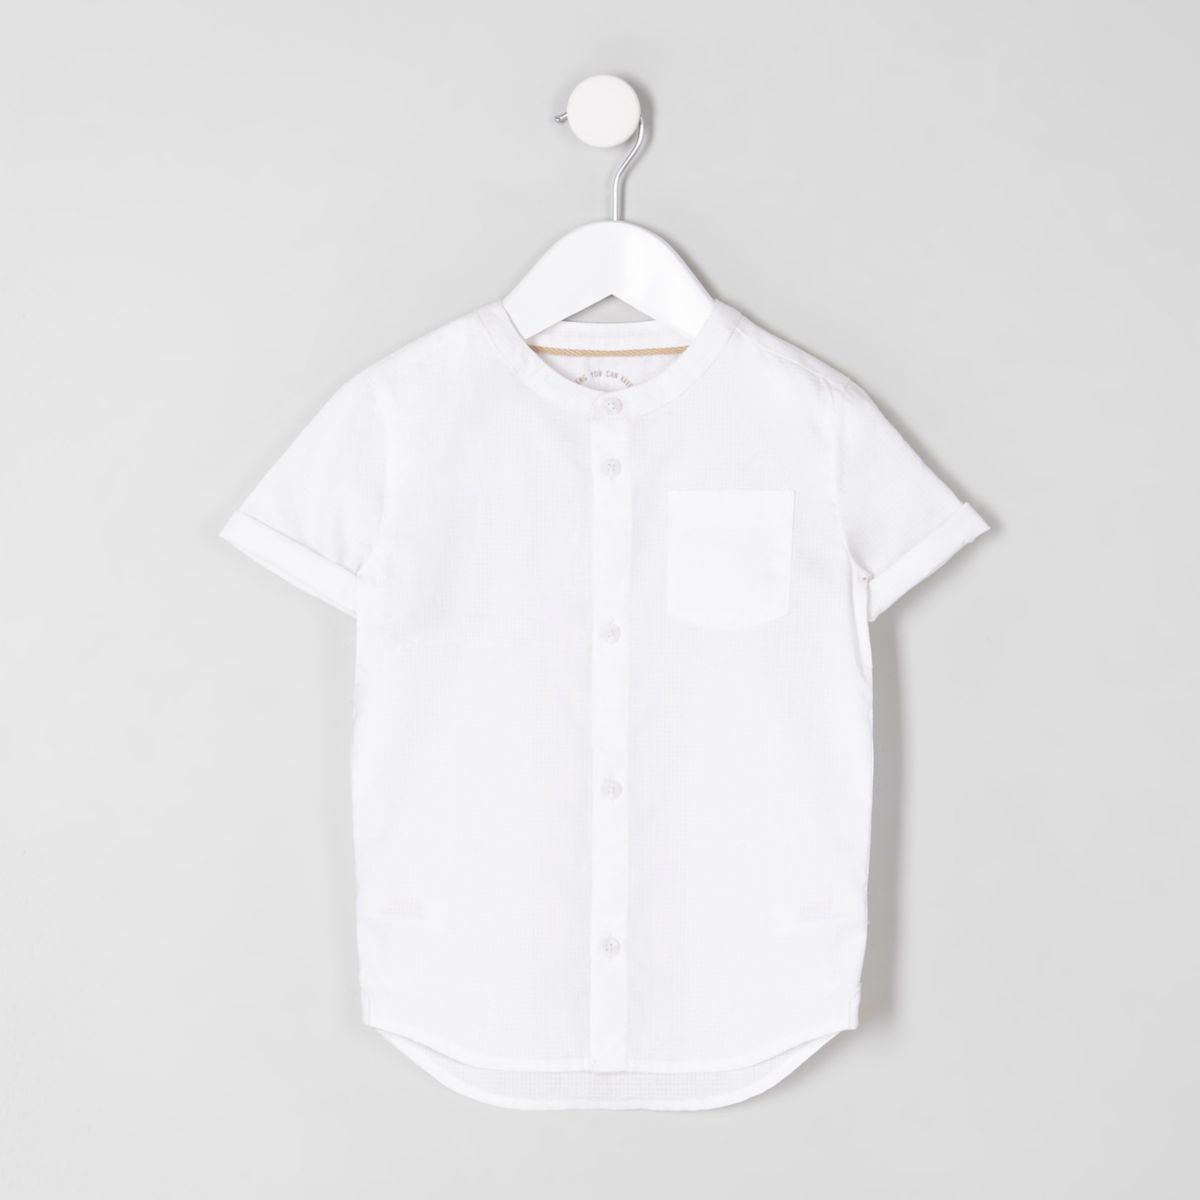 1, results for boys grandad shirts Save this search. Postage to Items in search results. SPONSORED. RED WAGON Boy's Waffle Texture Grandad Shirt COS Boys White Grandad Collar Shirt Age years. Pre-owned. £ + £ postage; Customs services and .